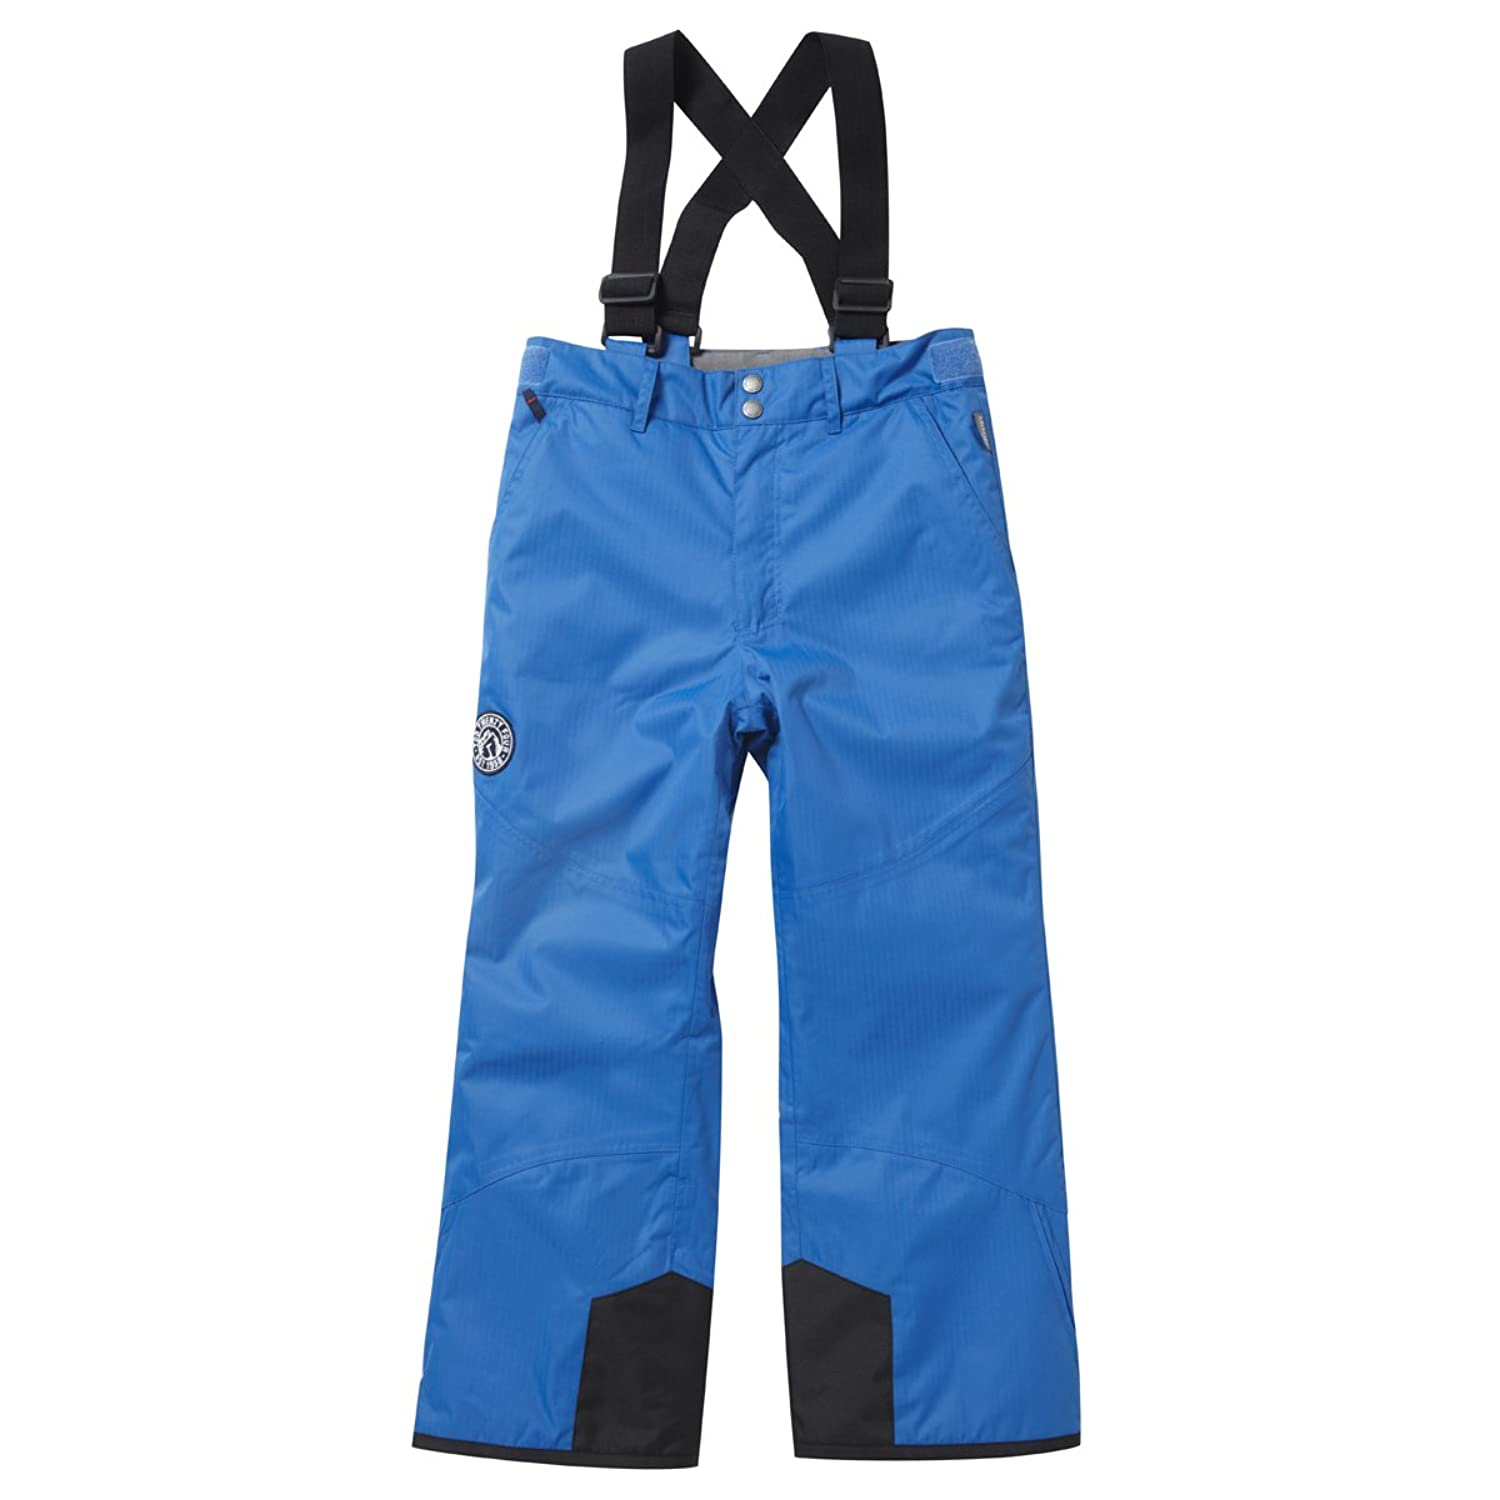 SLIDE MILATEX KINDERSKIHOSE - NEU BLAU